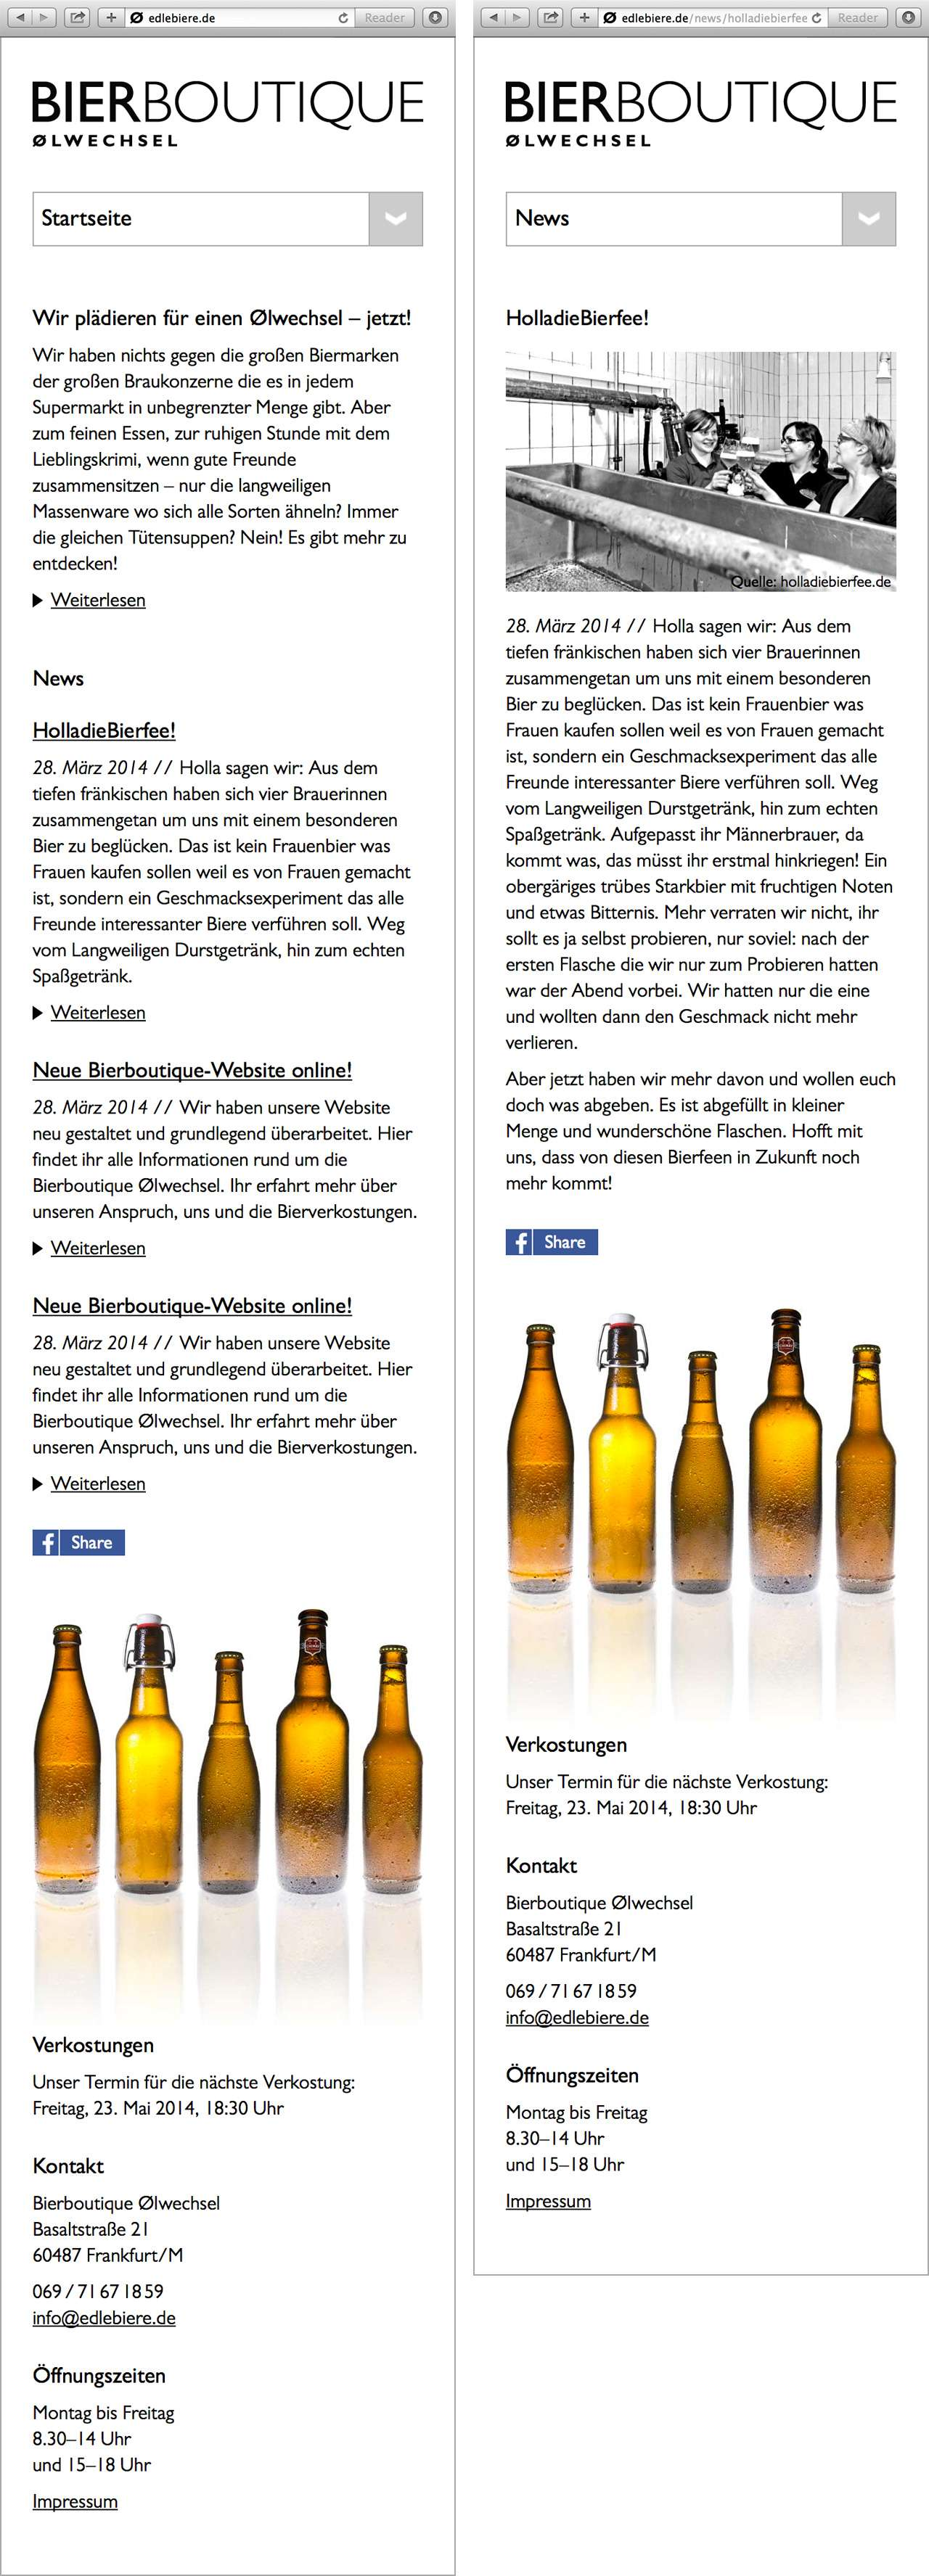 Screenshots der mobilen Version der Website der Bierboutique Ølwechsel